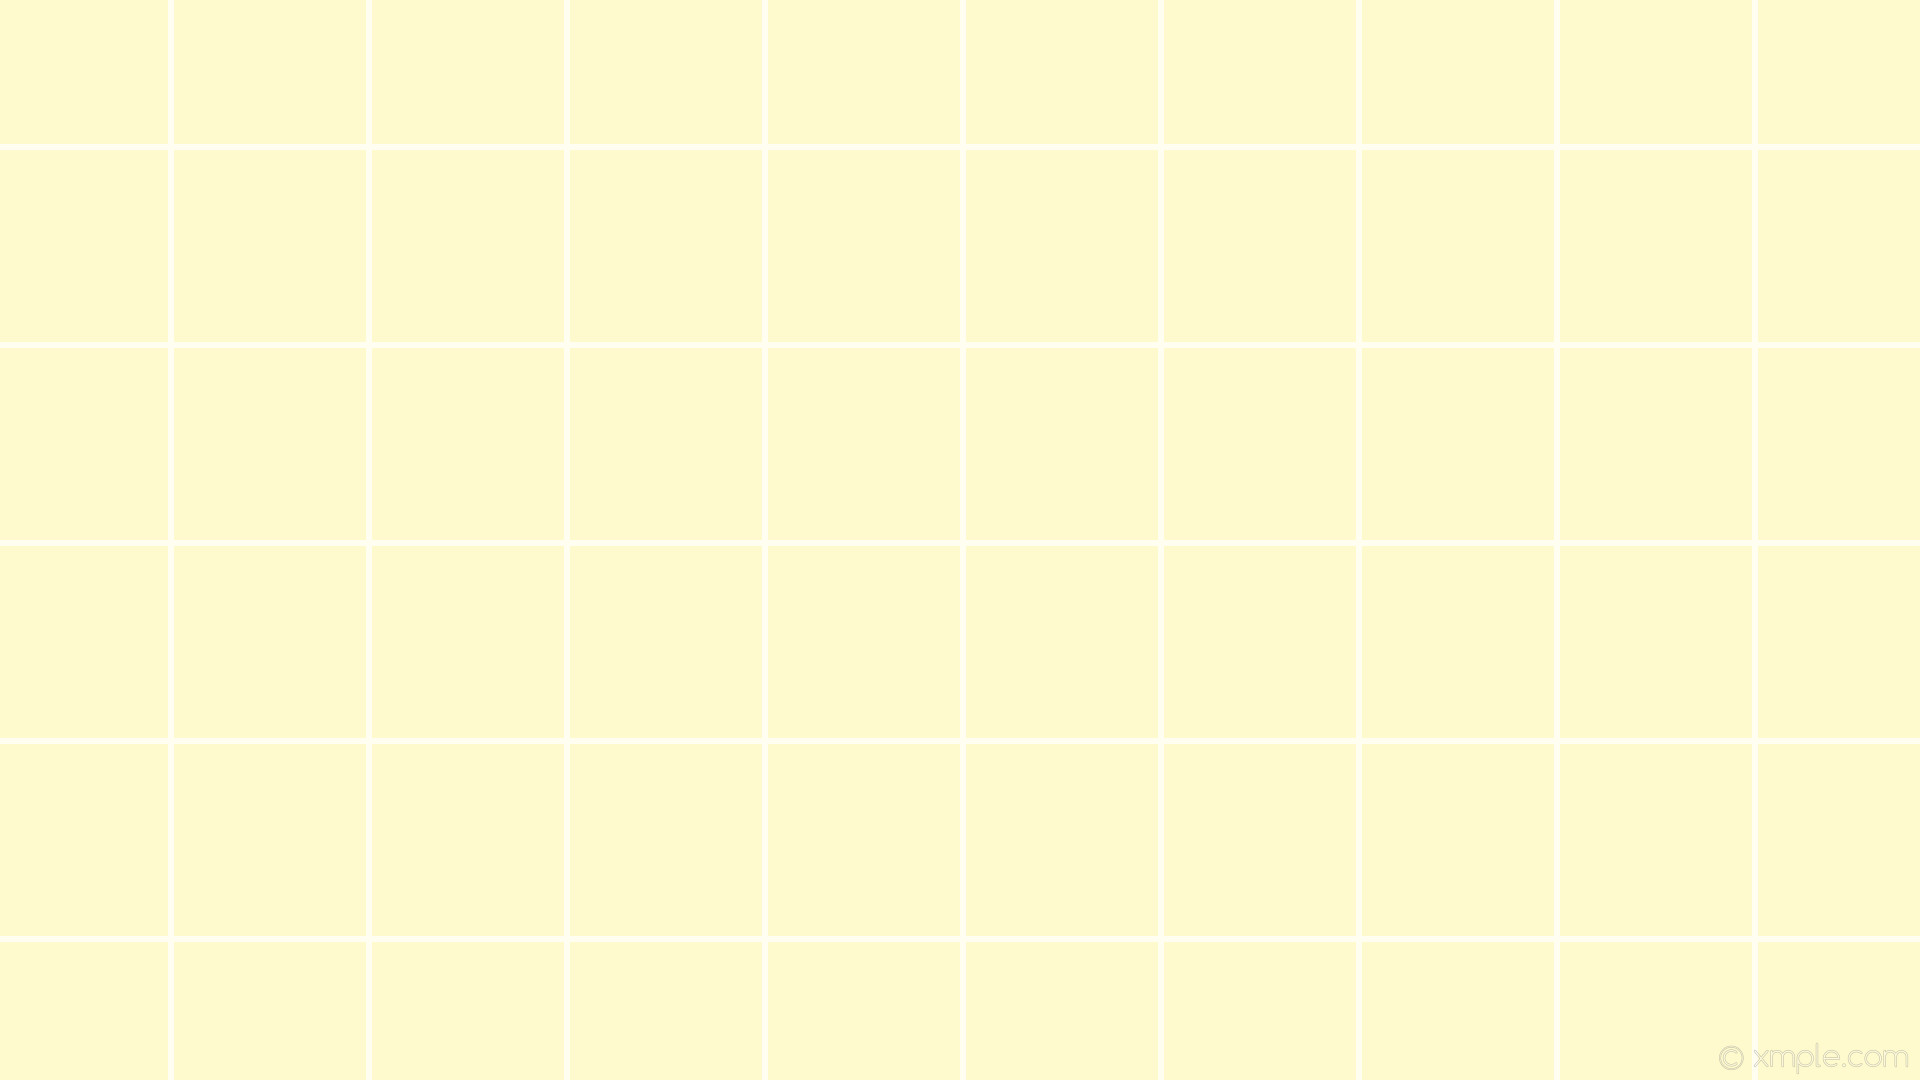 1920x1080 wallpaper graph paper yellow white grid lemon chiffon #fffacd #ffffff 0°  6px 198px